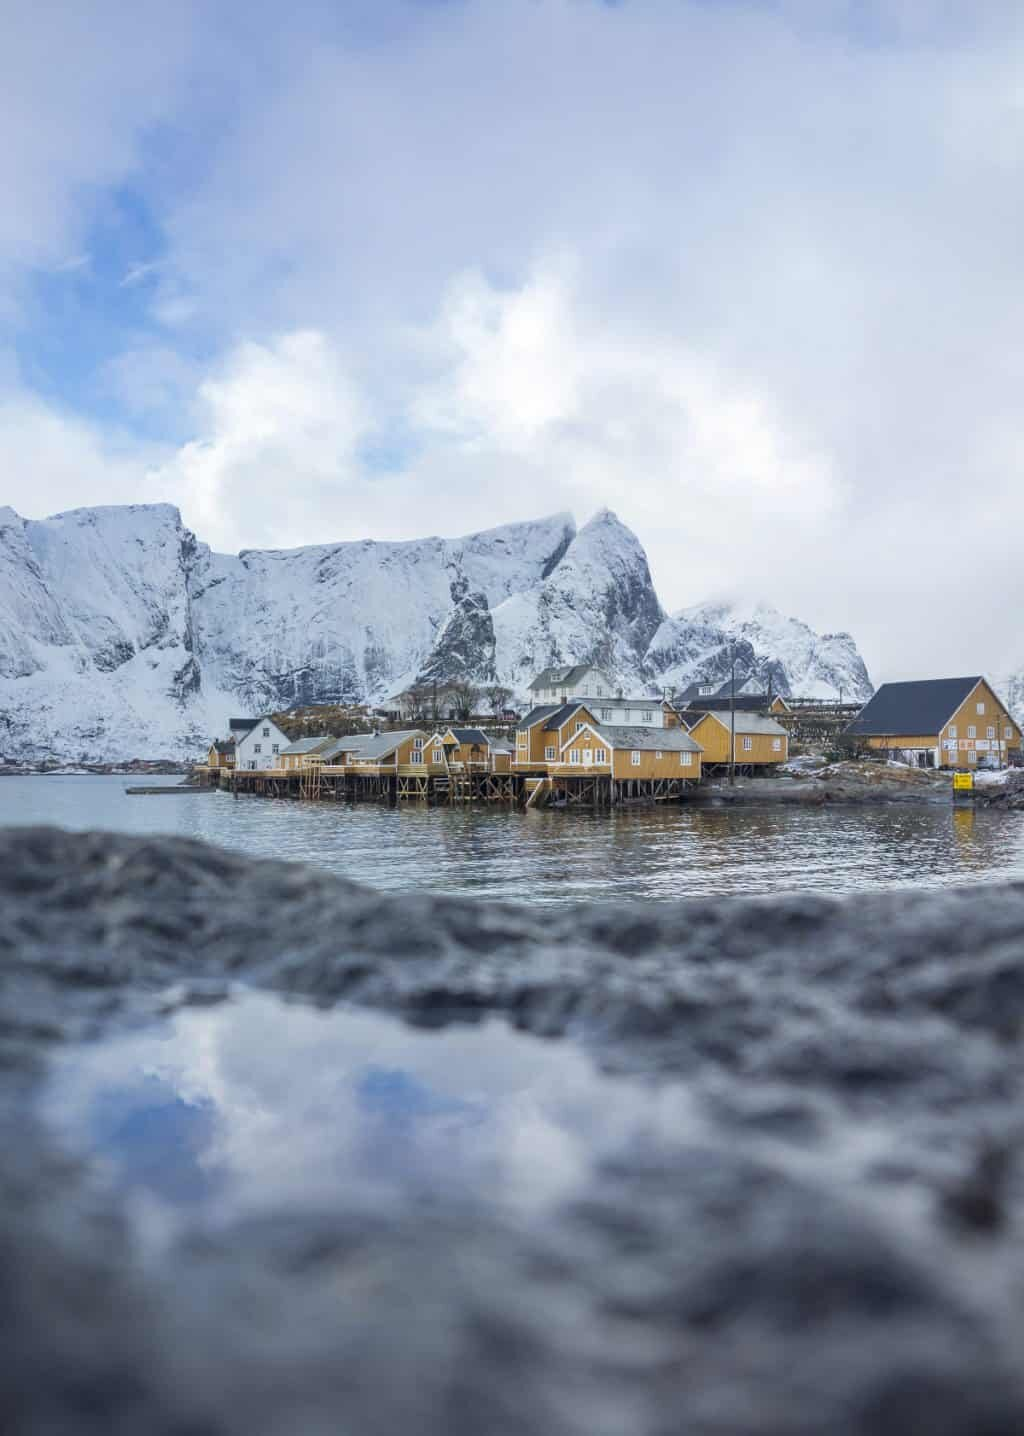 The Lofoten Islands, Norway Landscape Photography by Lisa Michele Burns